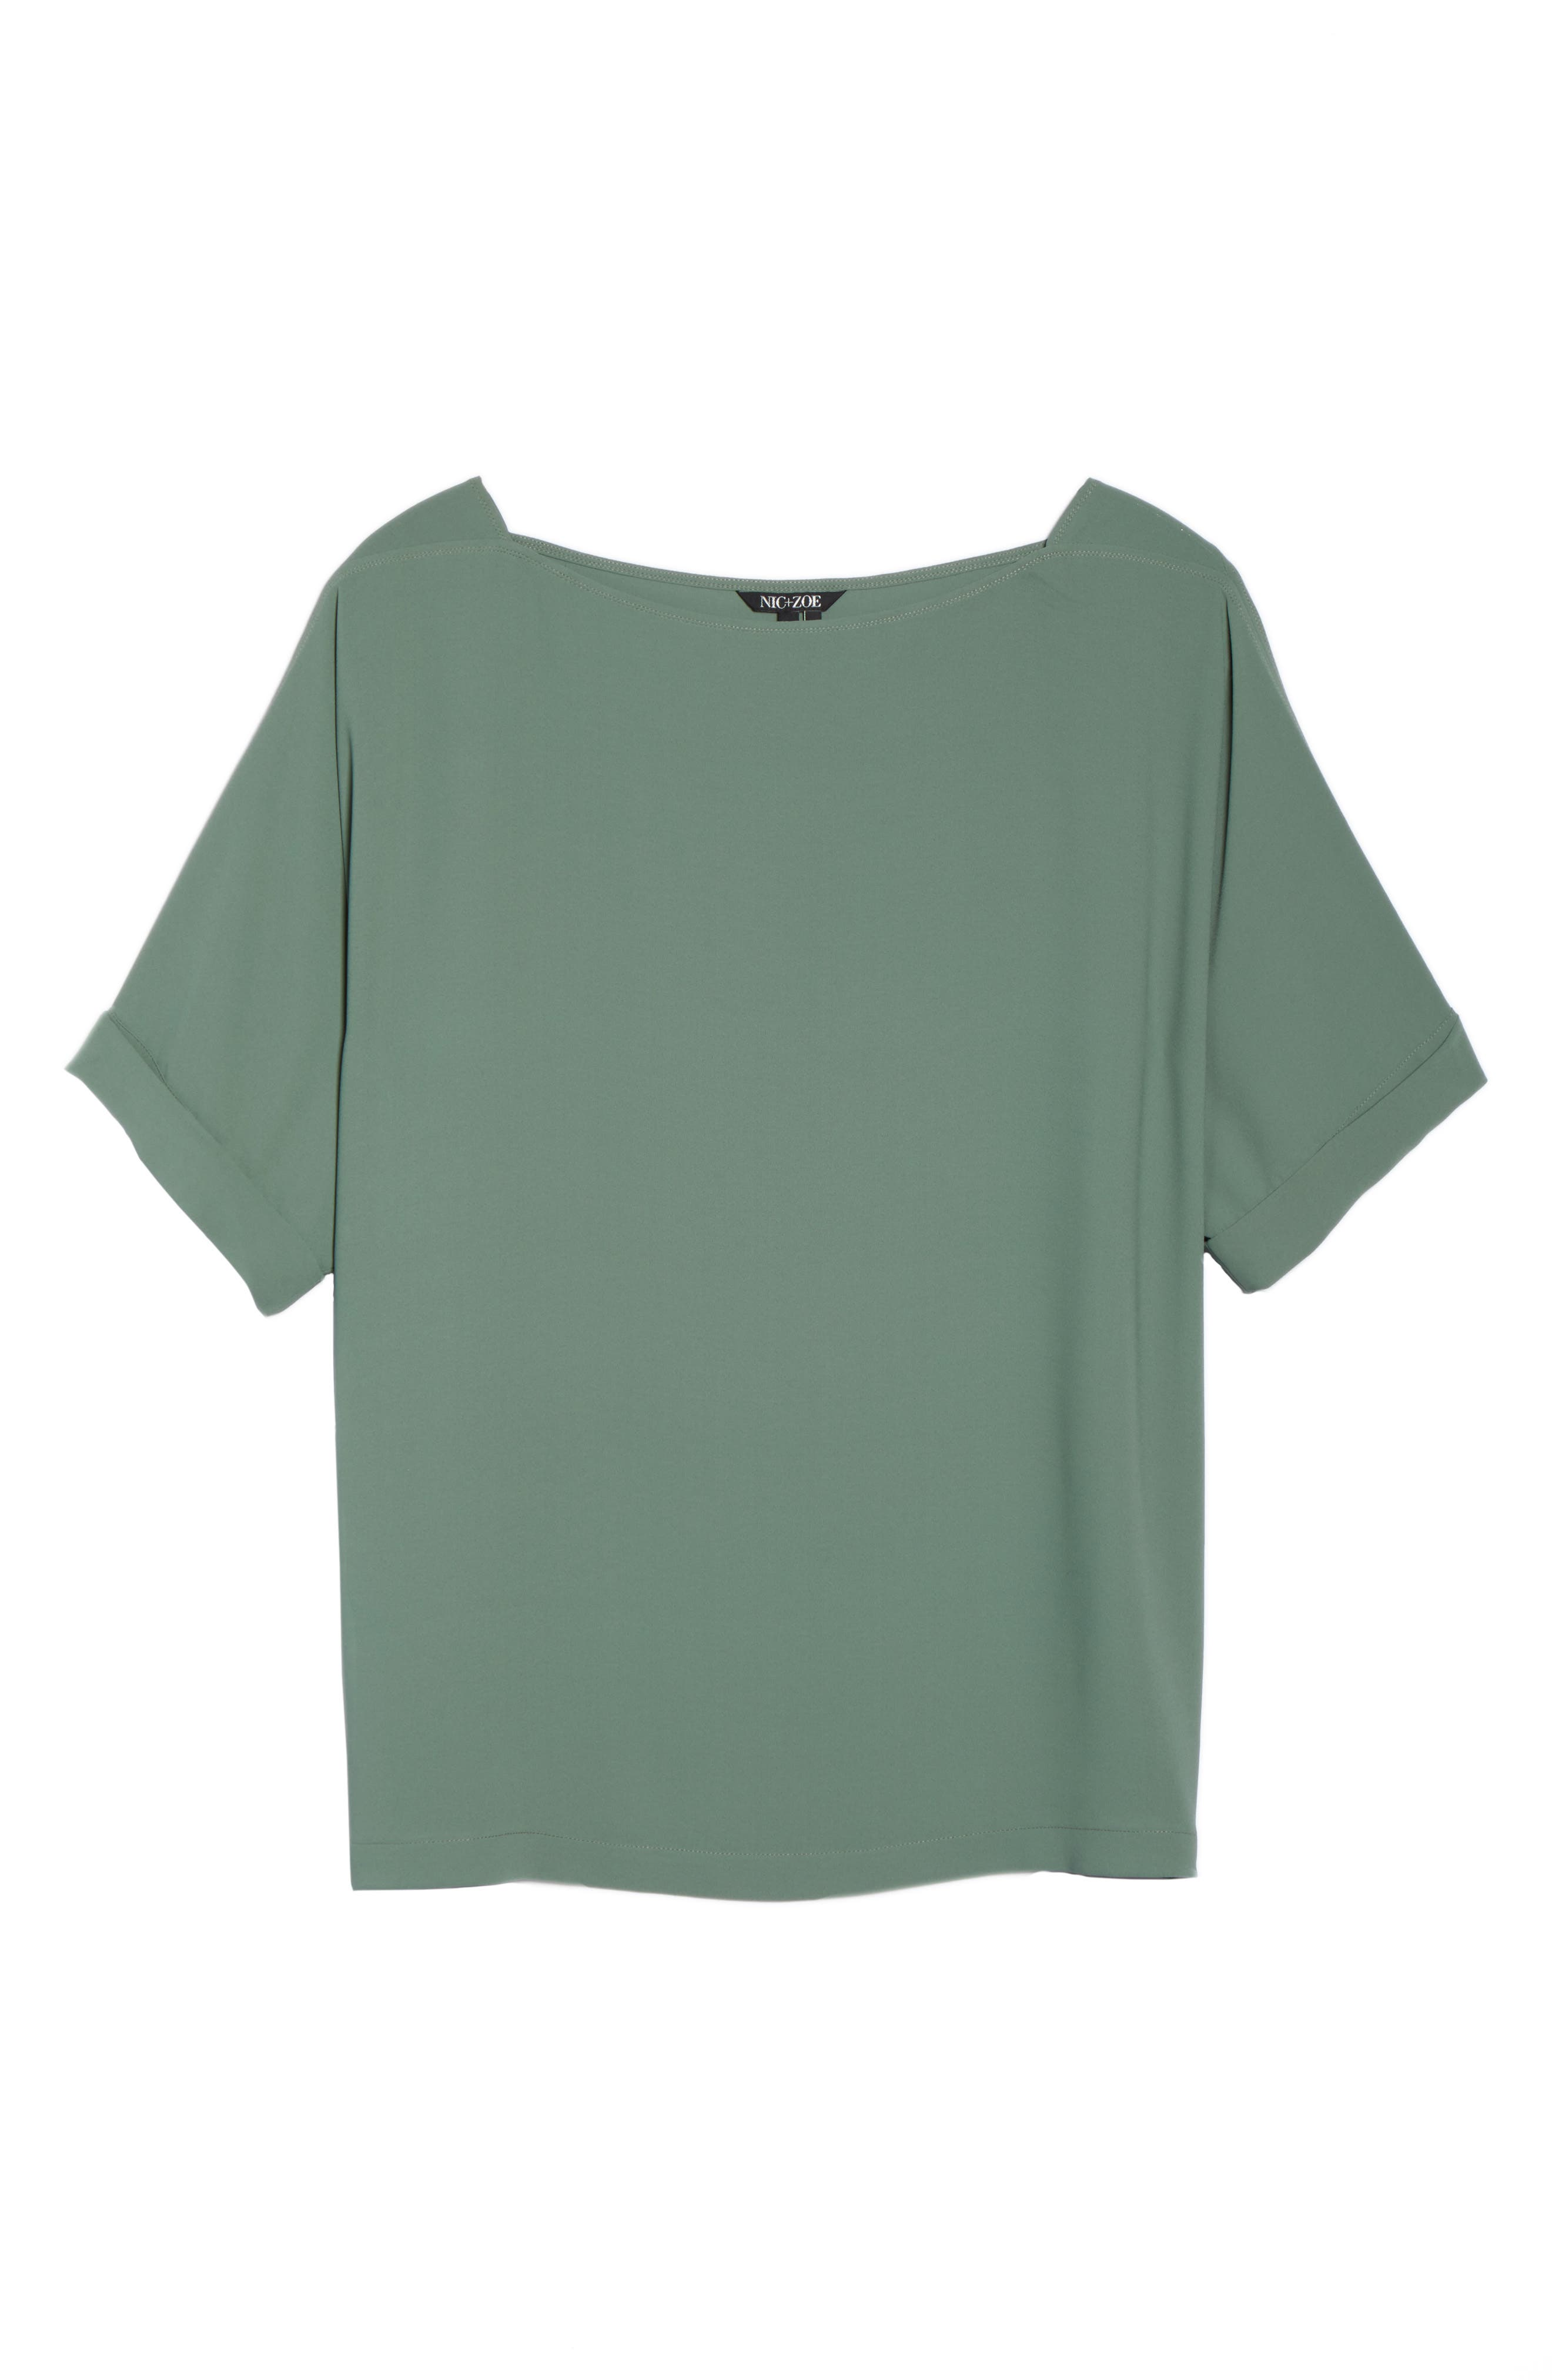 Moroccan Tee,                             Alternate thumbnail 6, color,                             Spring Moss